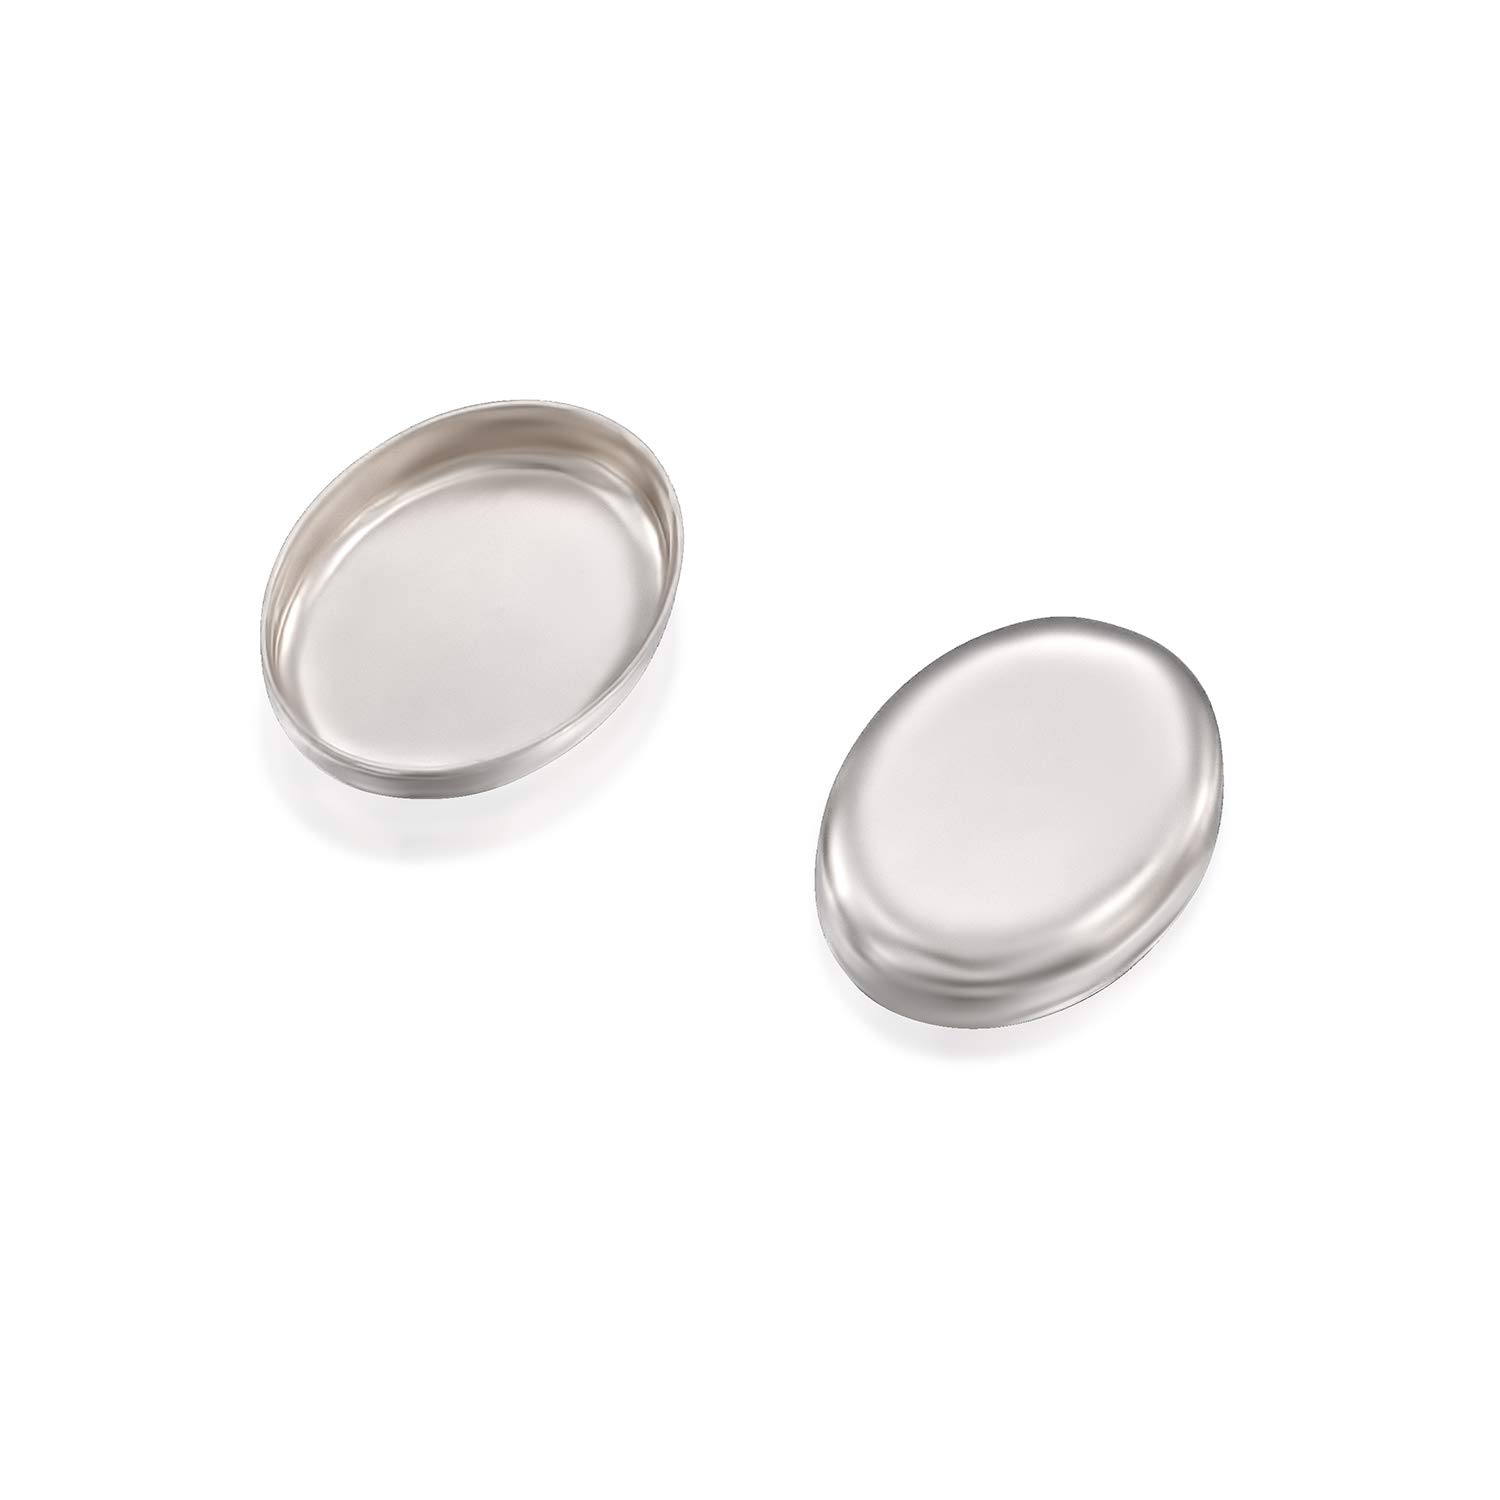 Stera Jewelry 6 Pcs Oval Setting 925 Sterling Silver 6 x 8 mm Bezel Cup Findings for Rings Pendants Charms Earrings